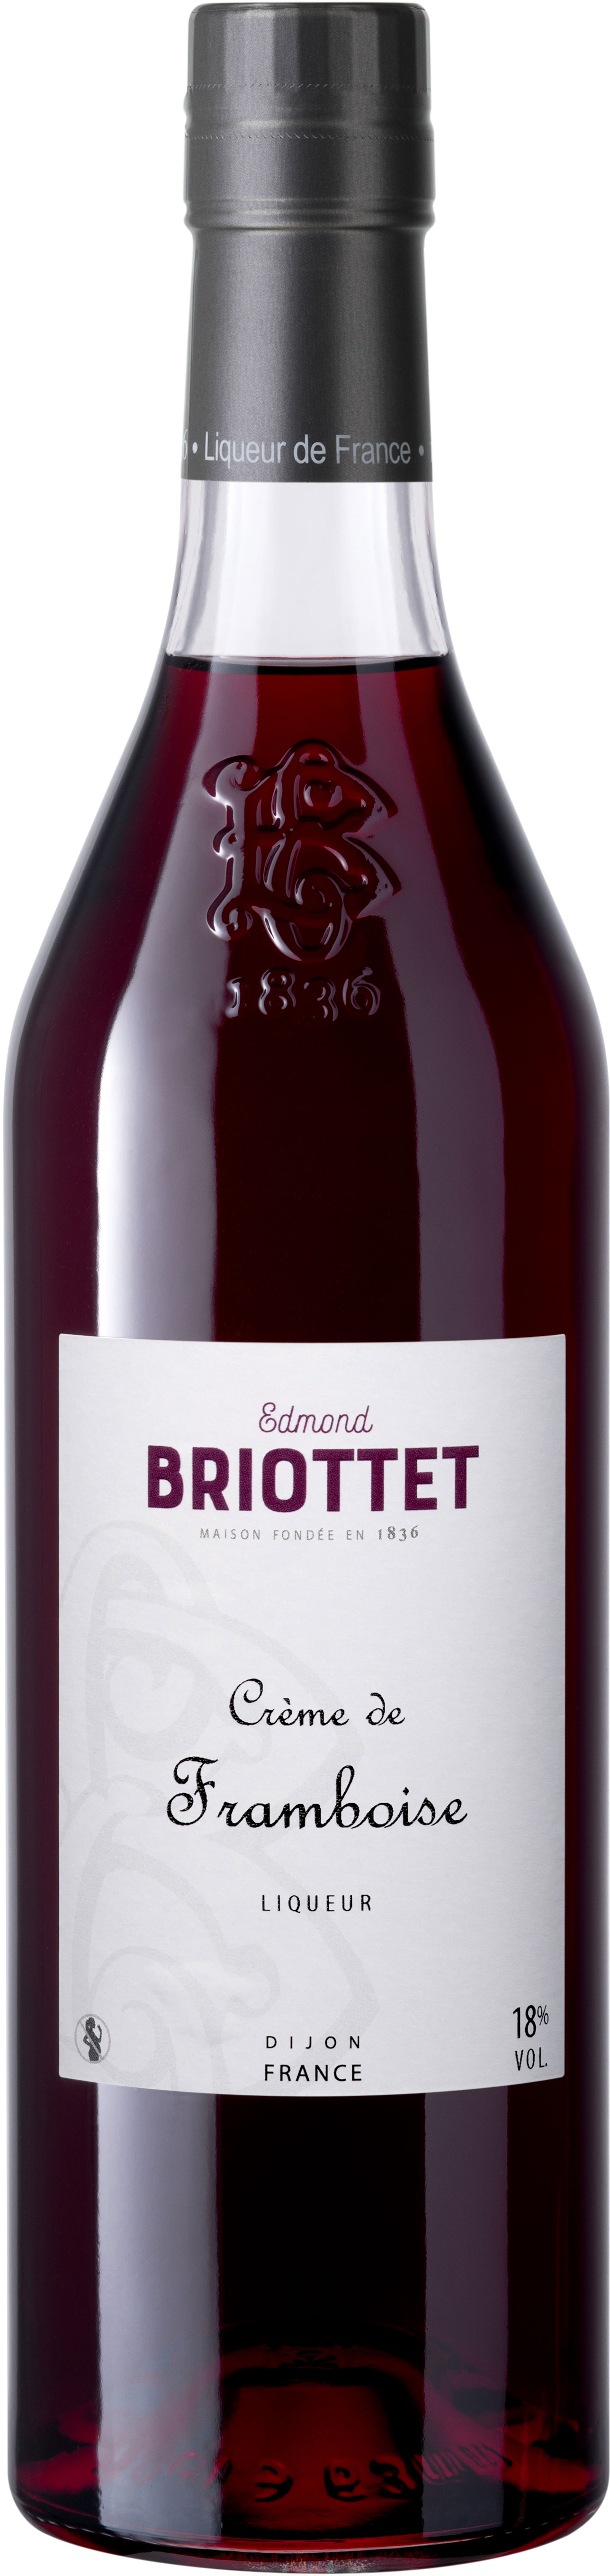 Briottet - Creme de Framboise (Raspberry) 70cl Bottle